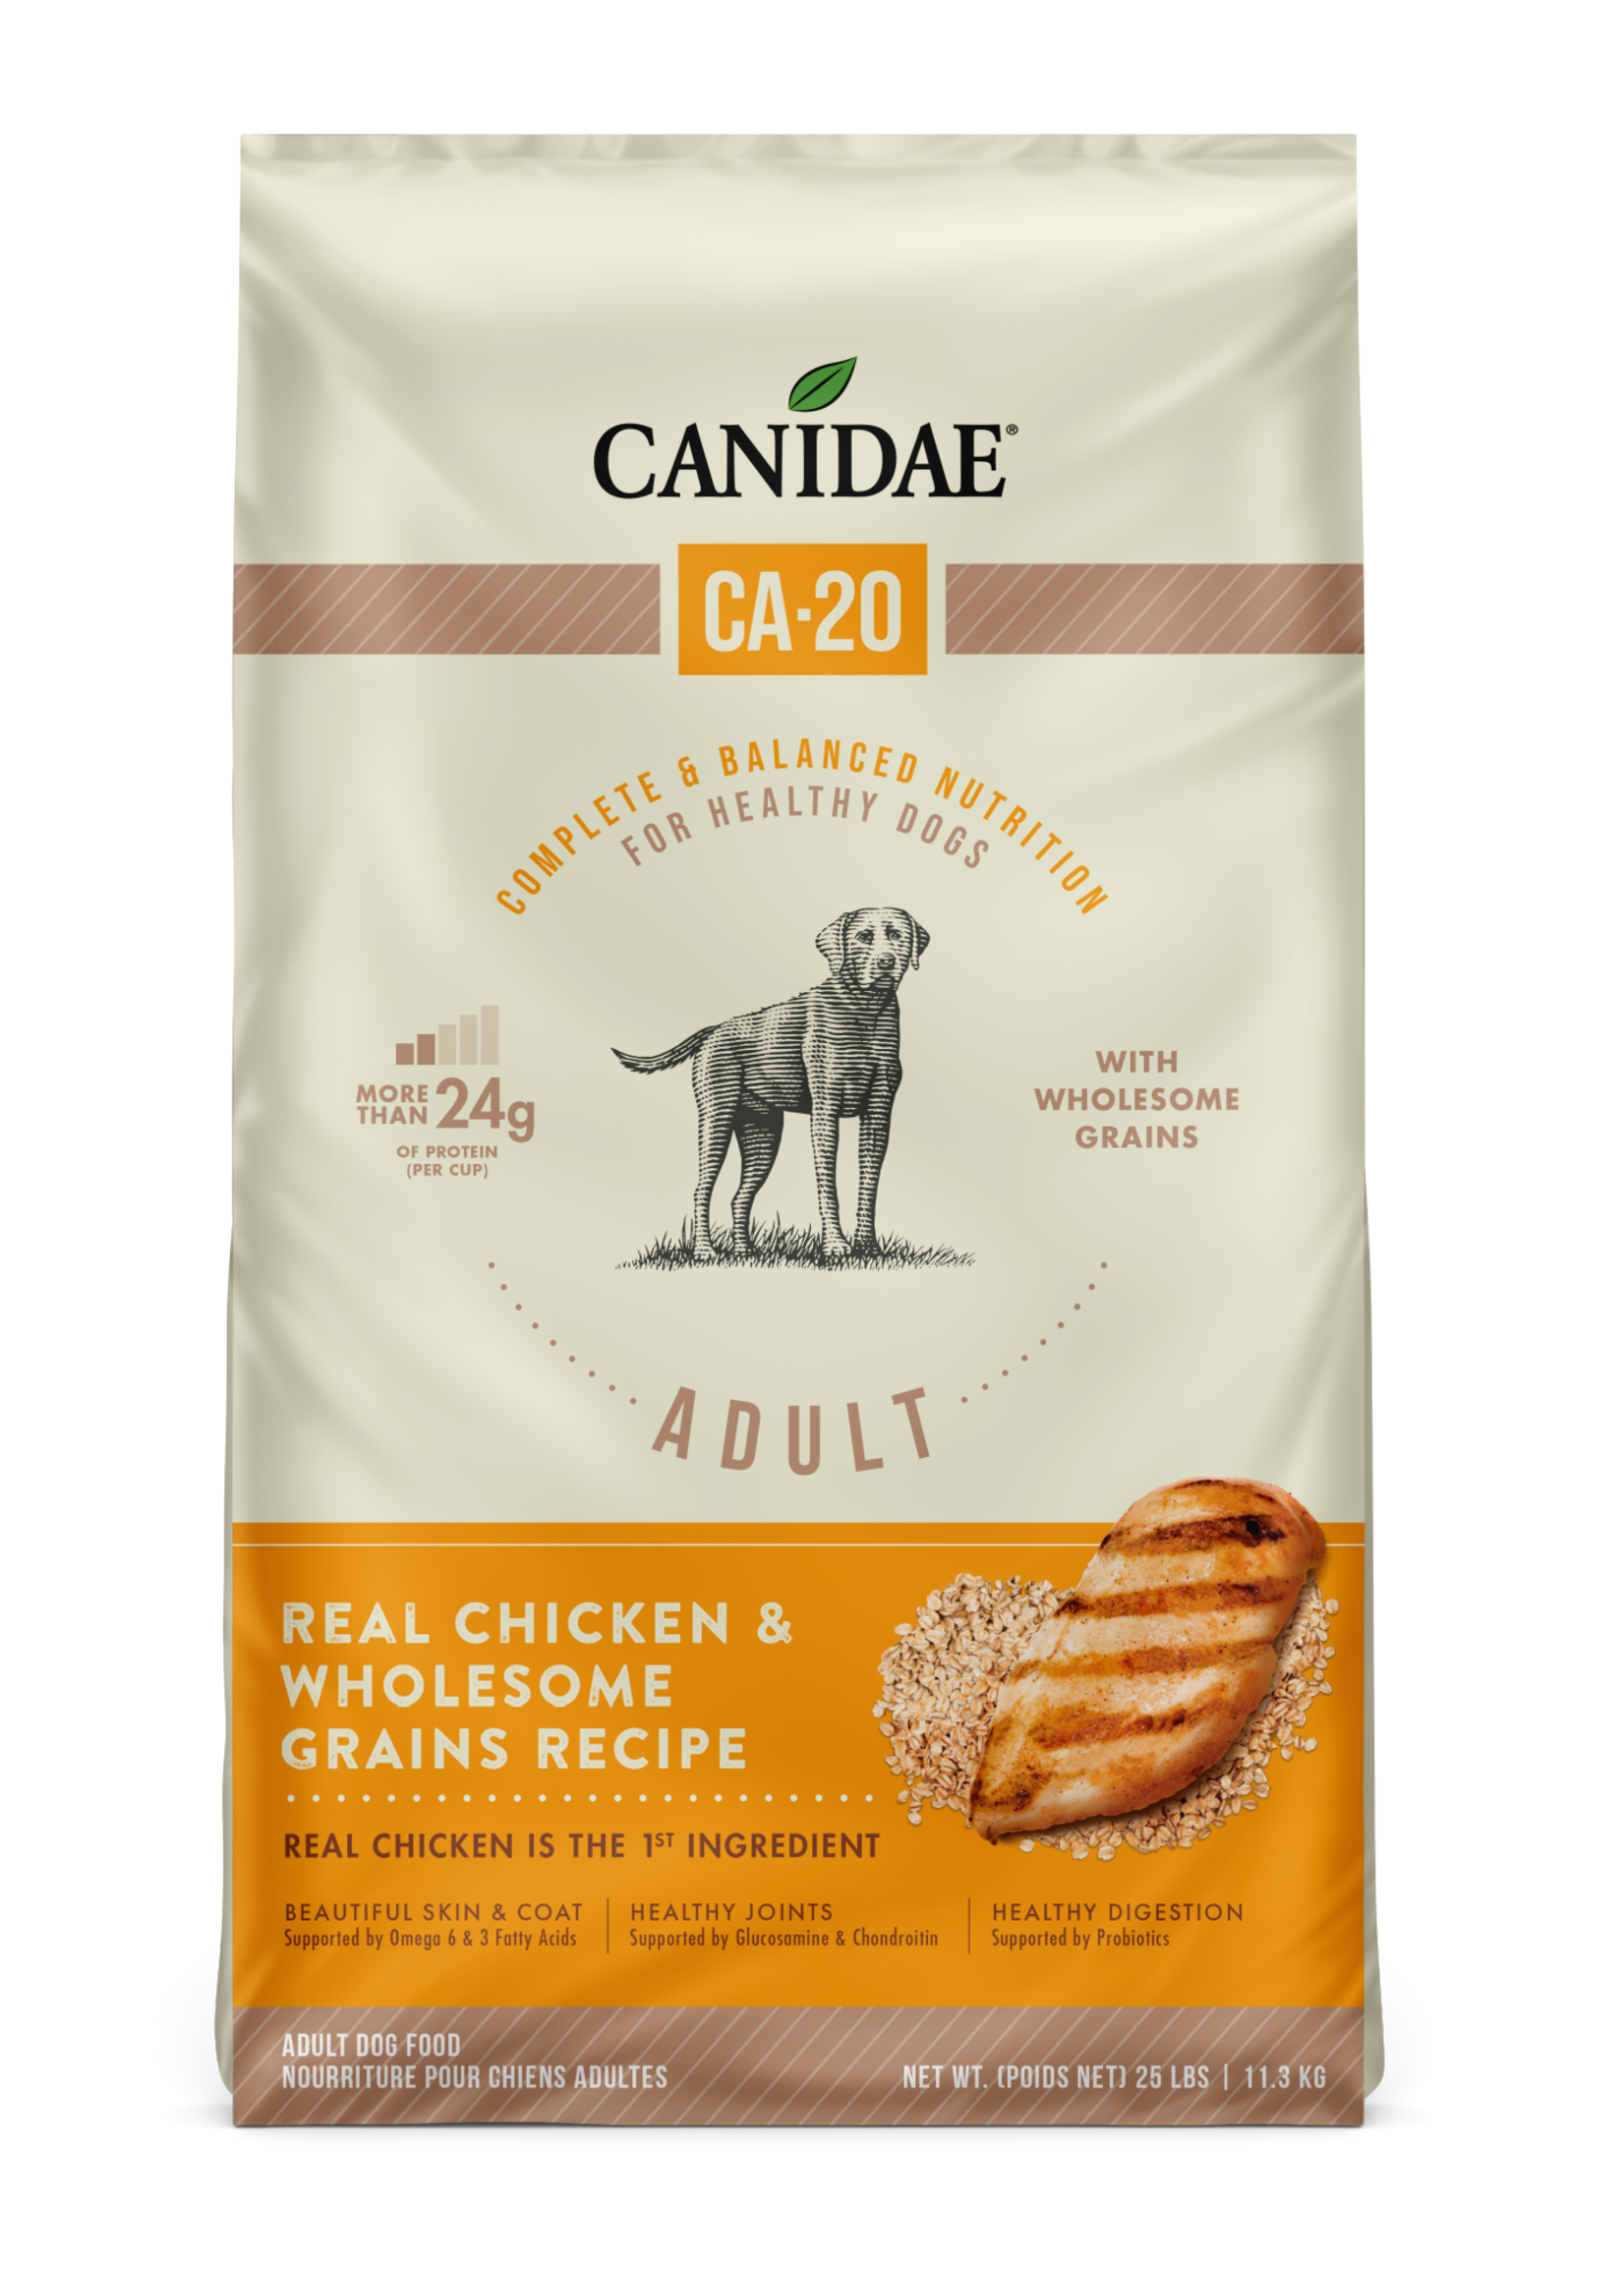 Canidae Canidae CA-20 Chicken & Wholesome Grains 7 lb